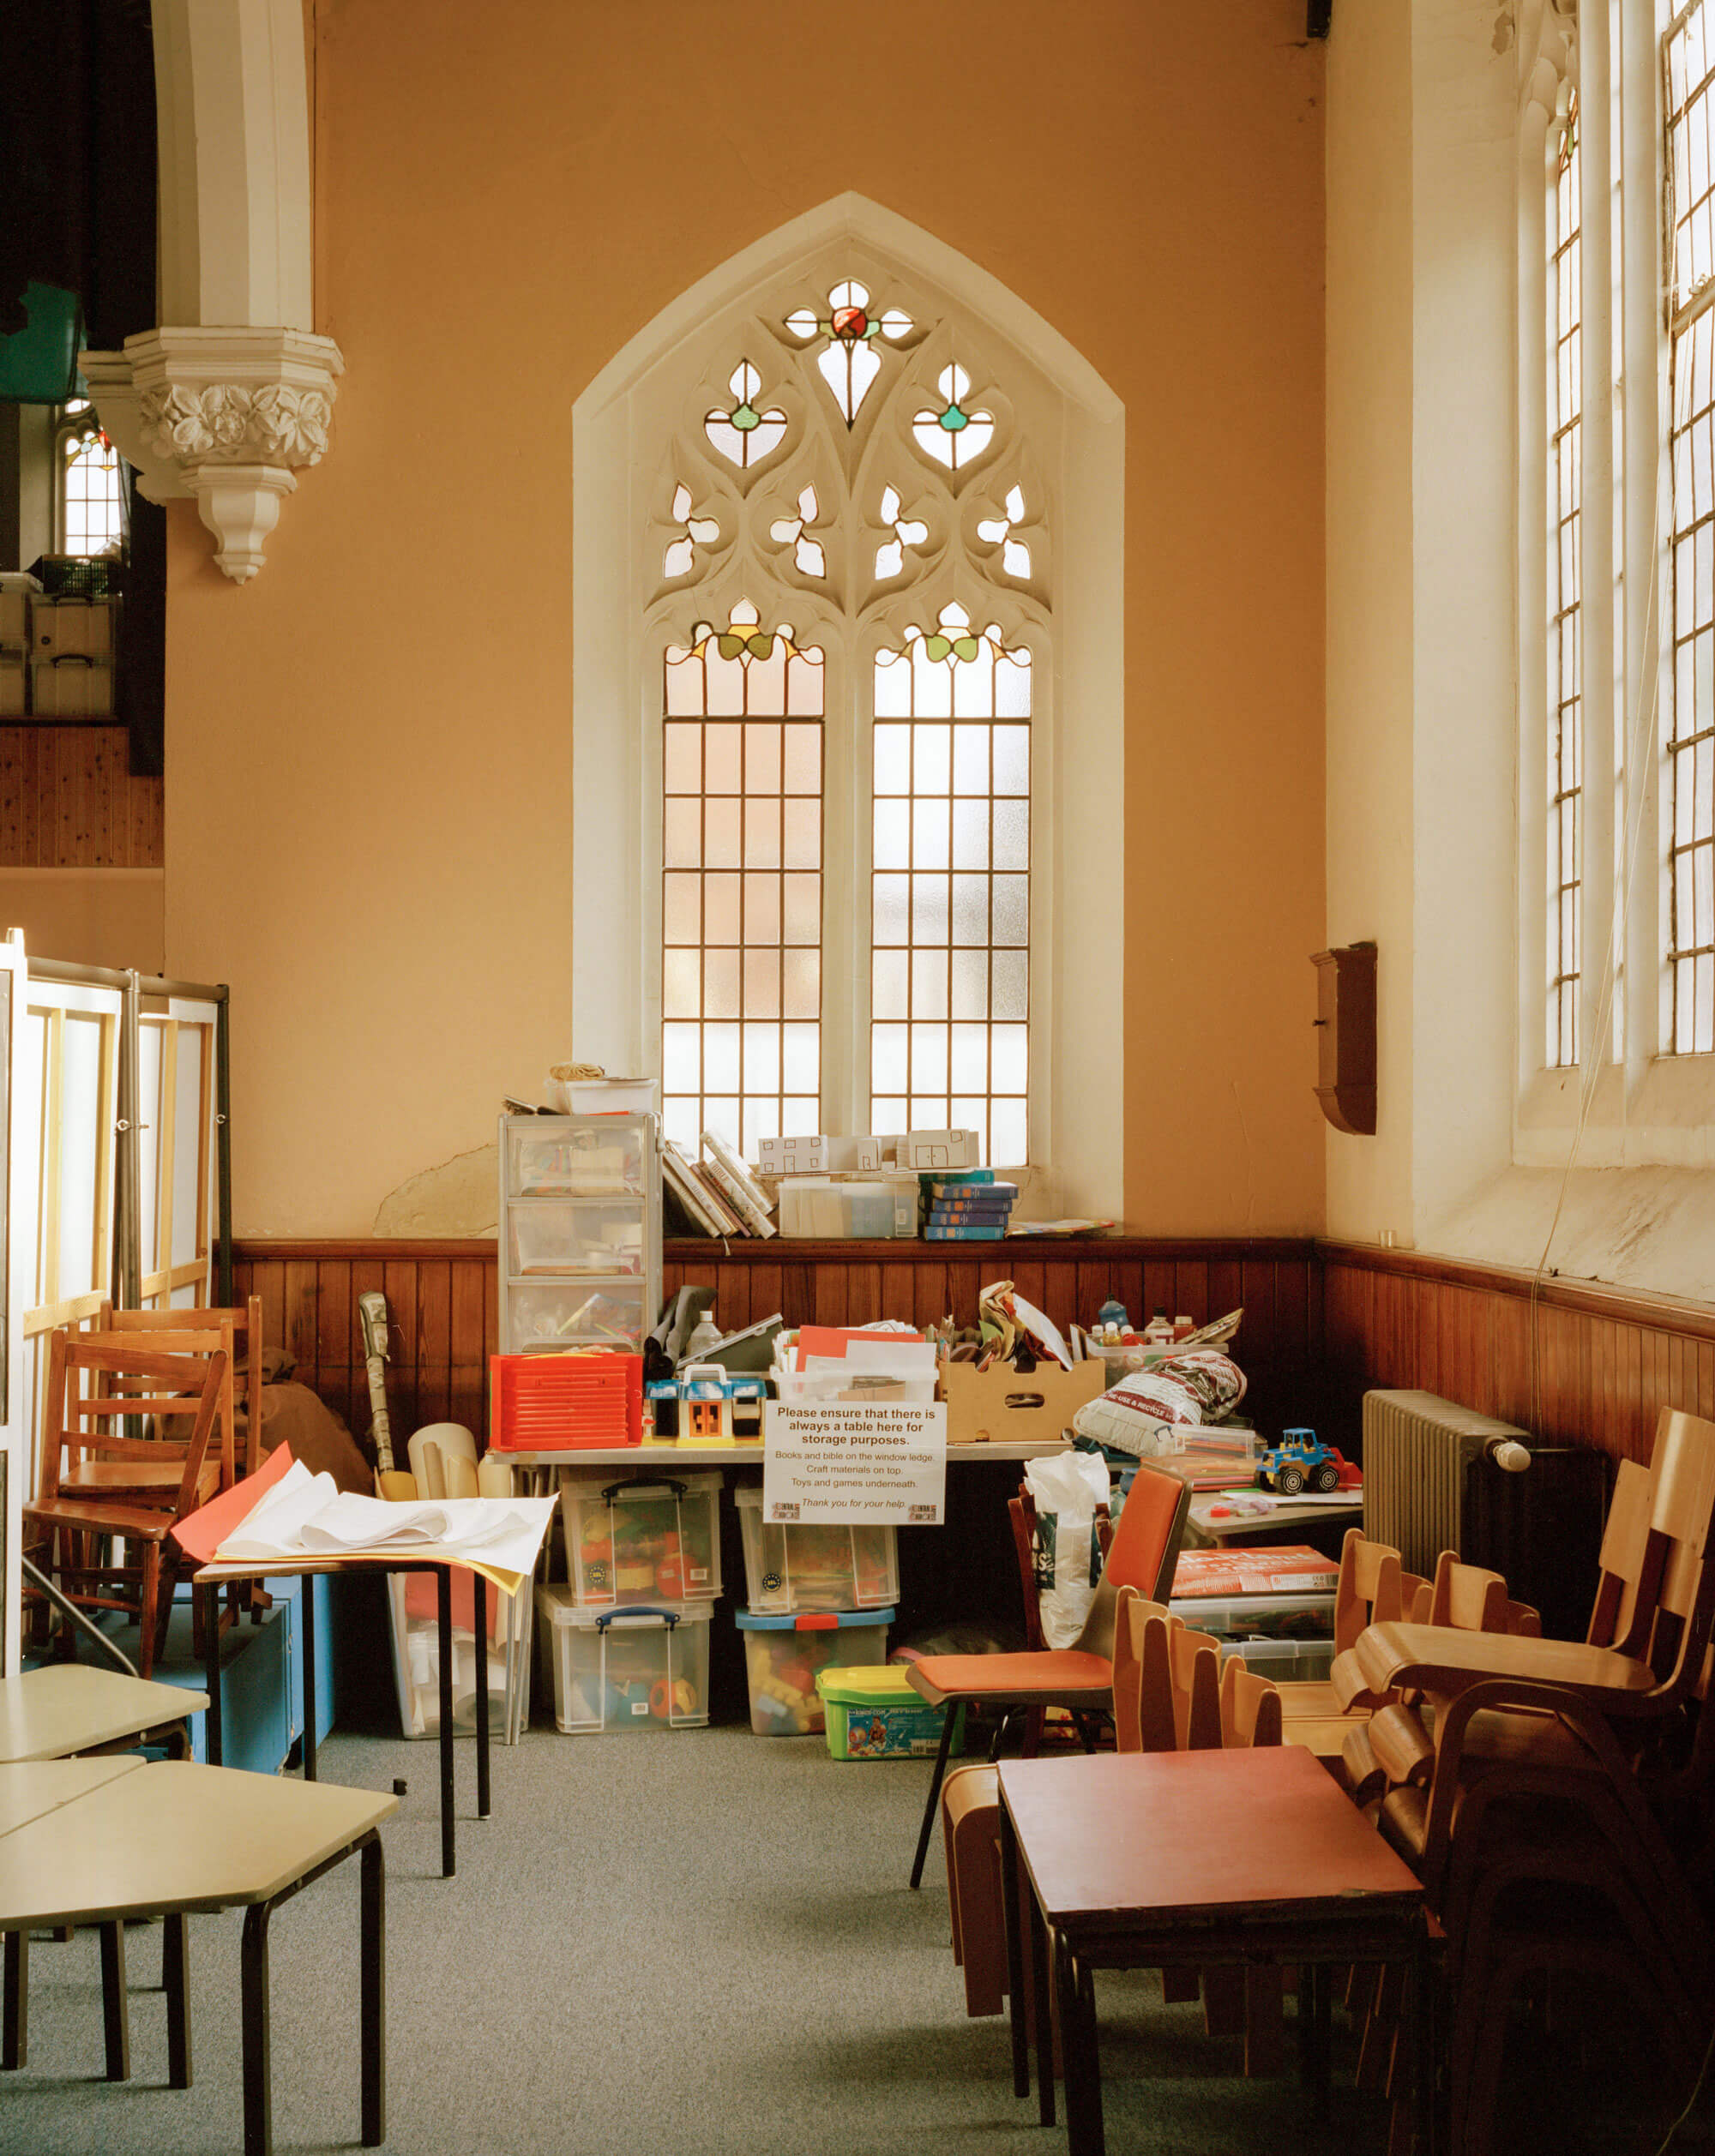 Kids play area in the Catholic Church